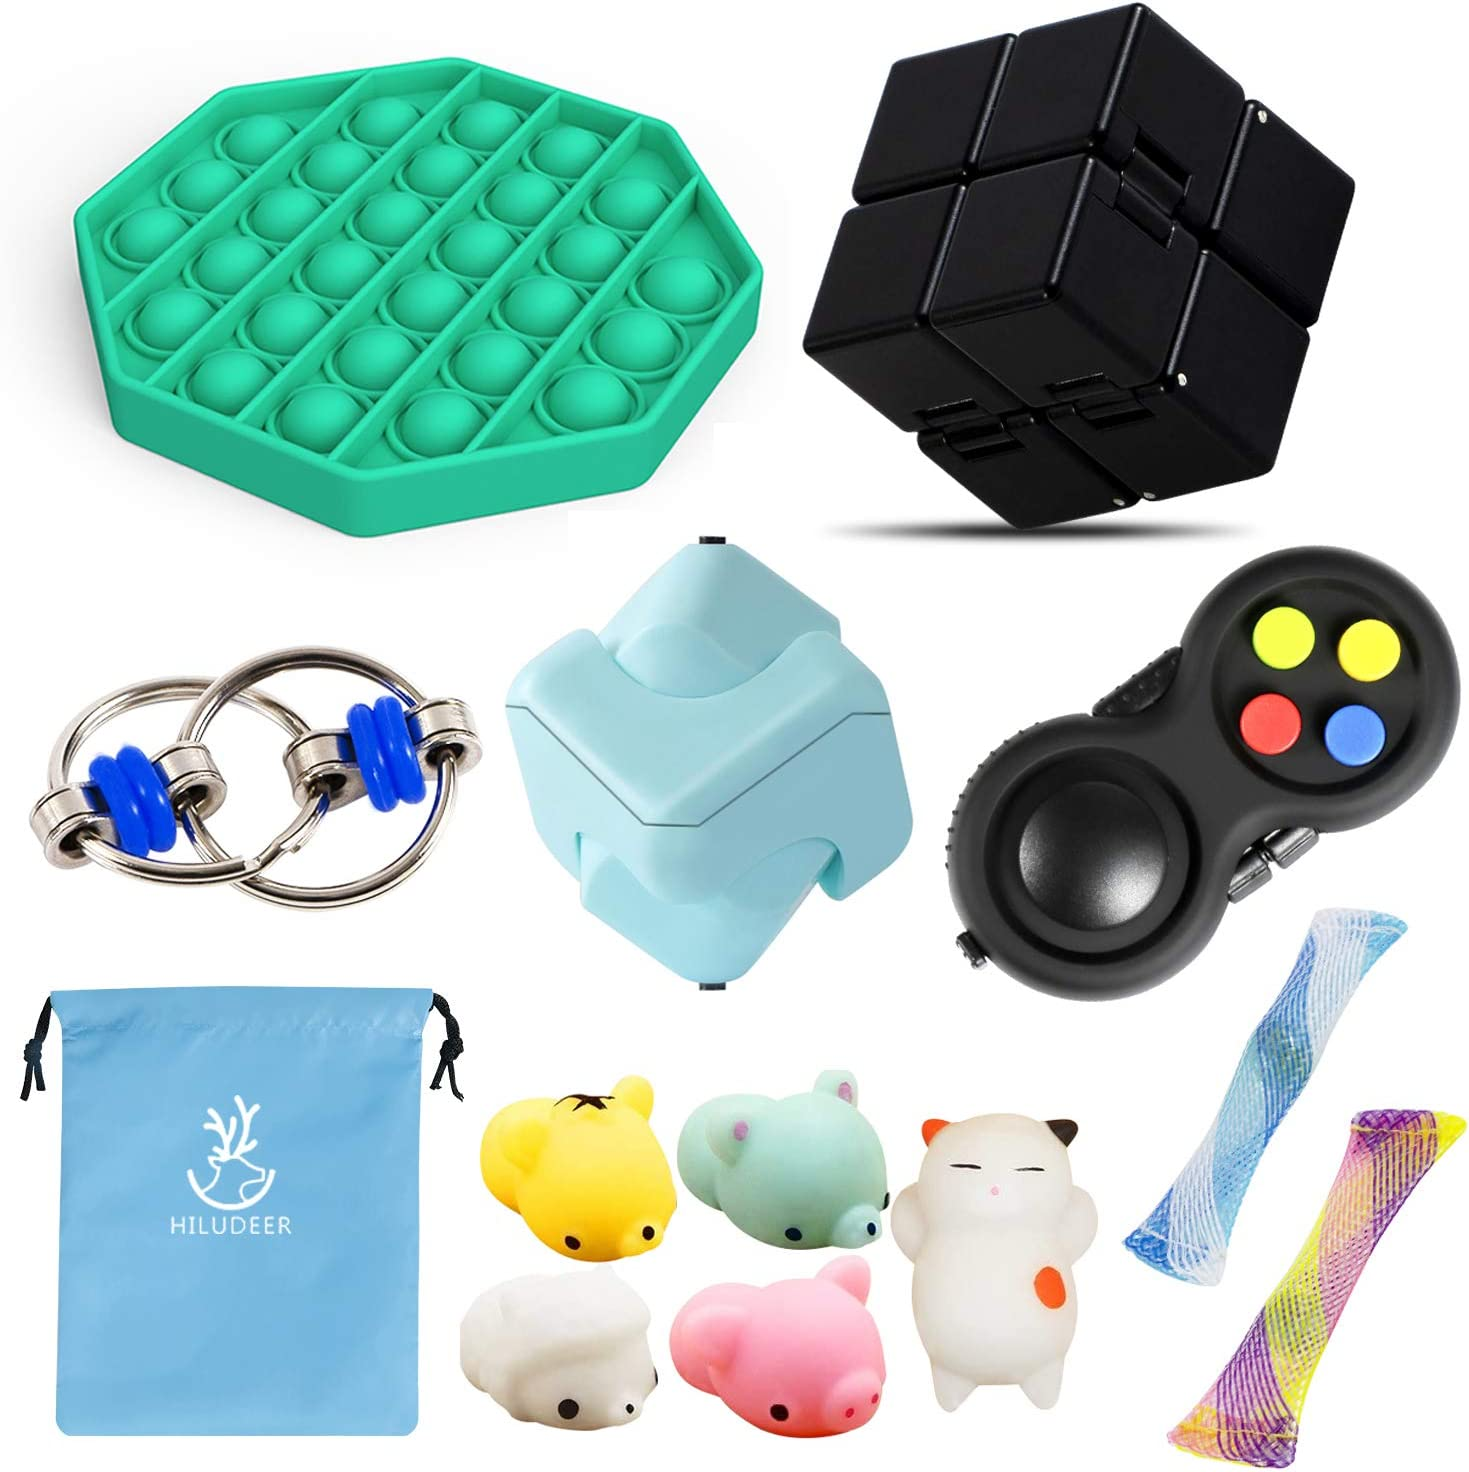 HILUDEER Fidget Toy Set 12pcs Pack , Stress and Anxiety Relief Toys Bundle for Kids and Adults, Include Bubble Popping It/Fidget Pad/Infinity Cube/Cube Spinner/Flippy Chain/Mochi Squishy (Green-pop)